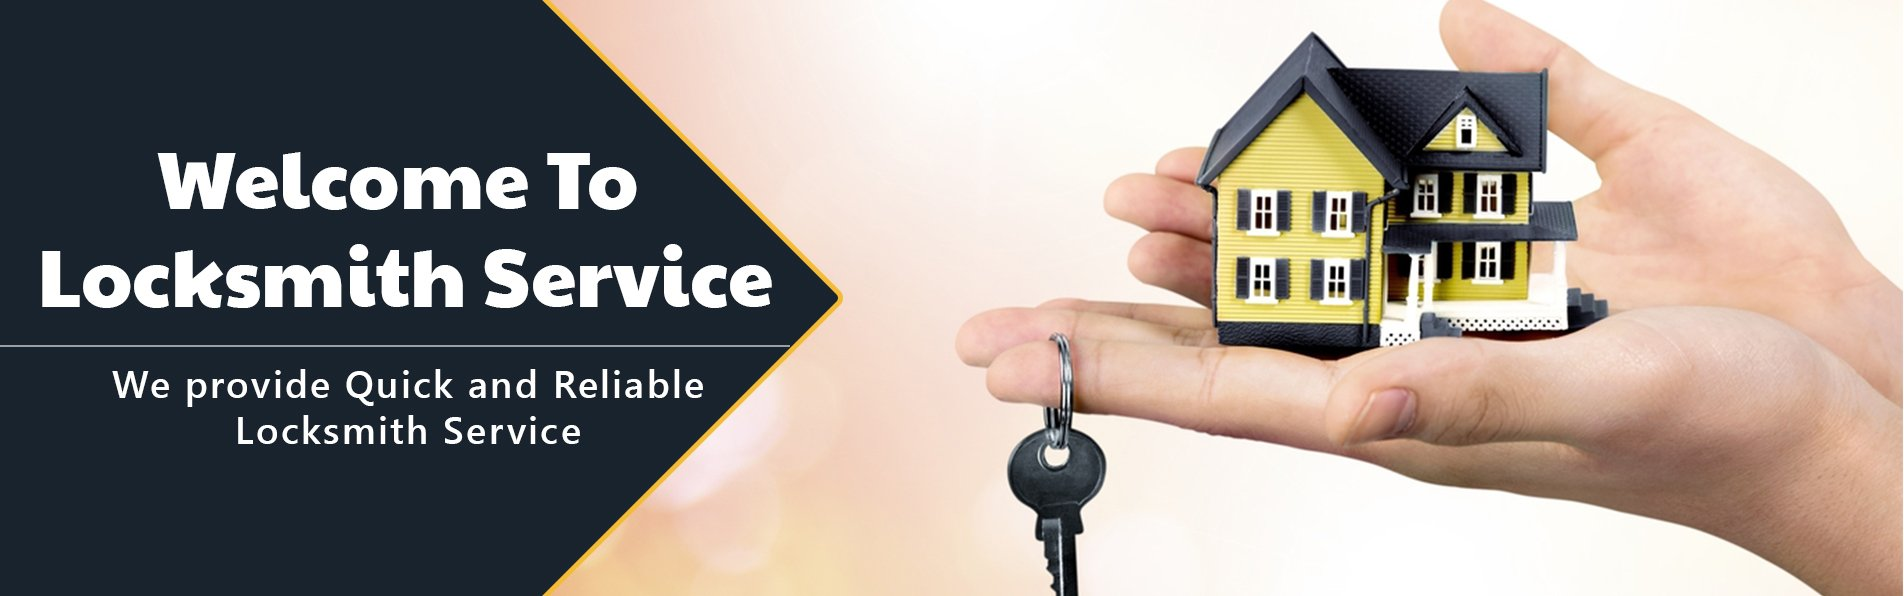 Los Angeles Central Locksmith, Los Angeles, CA 310-736-9265